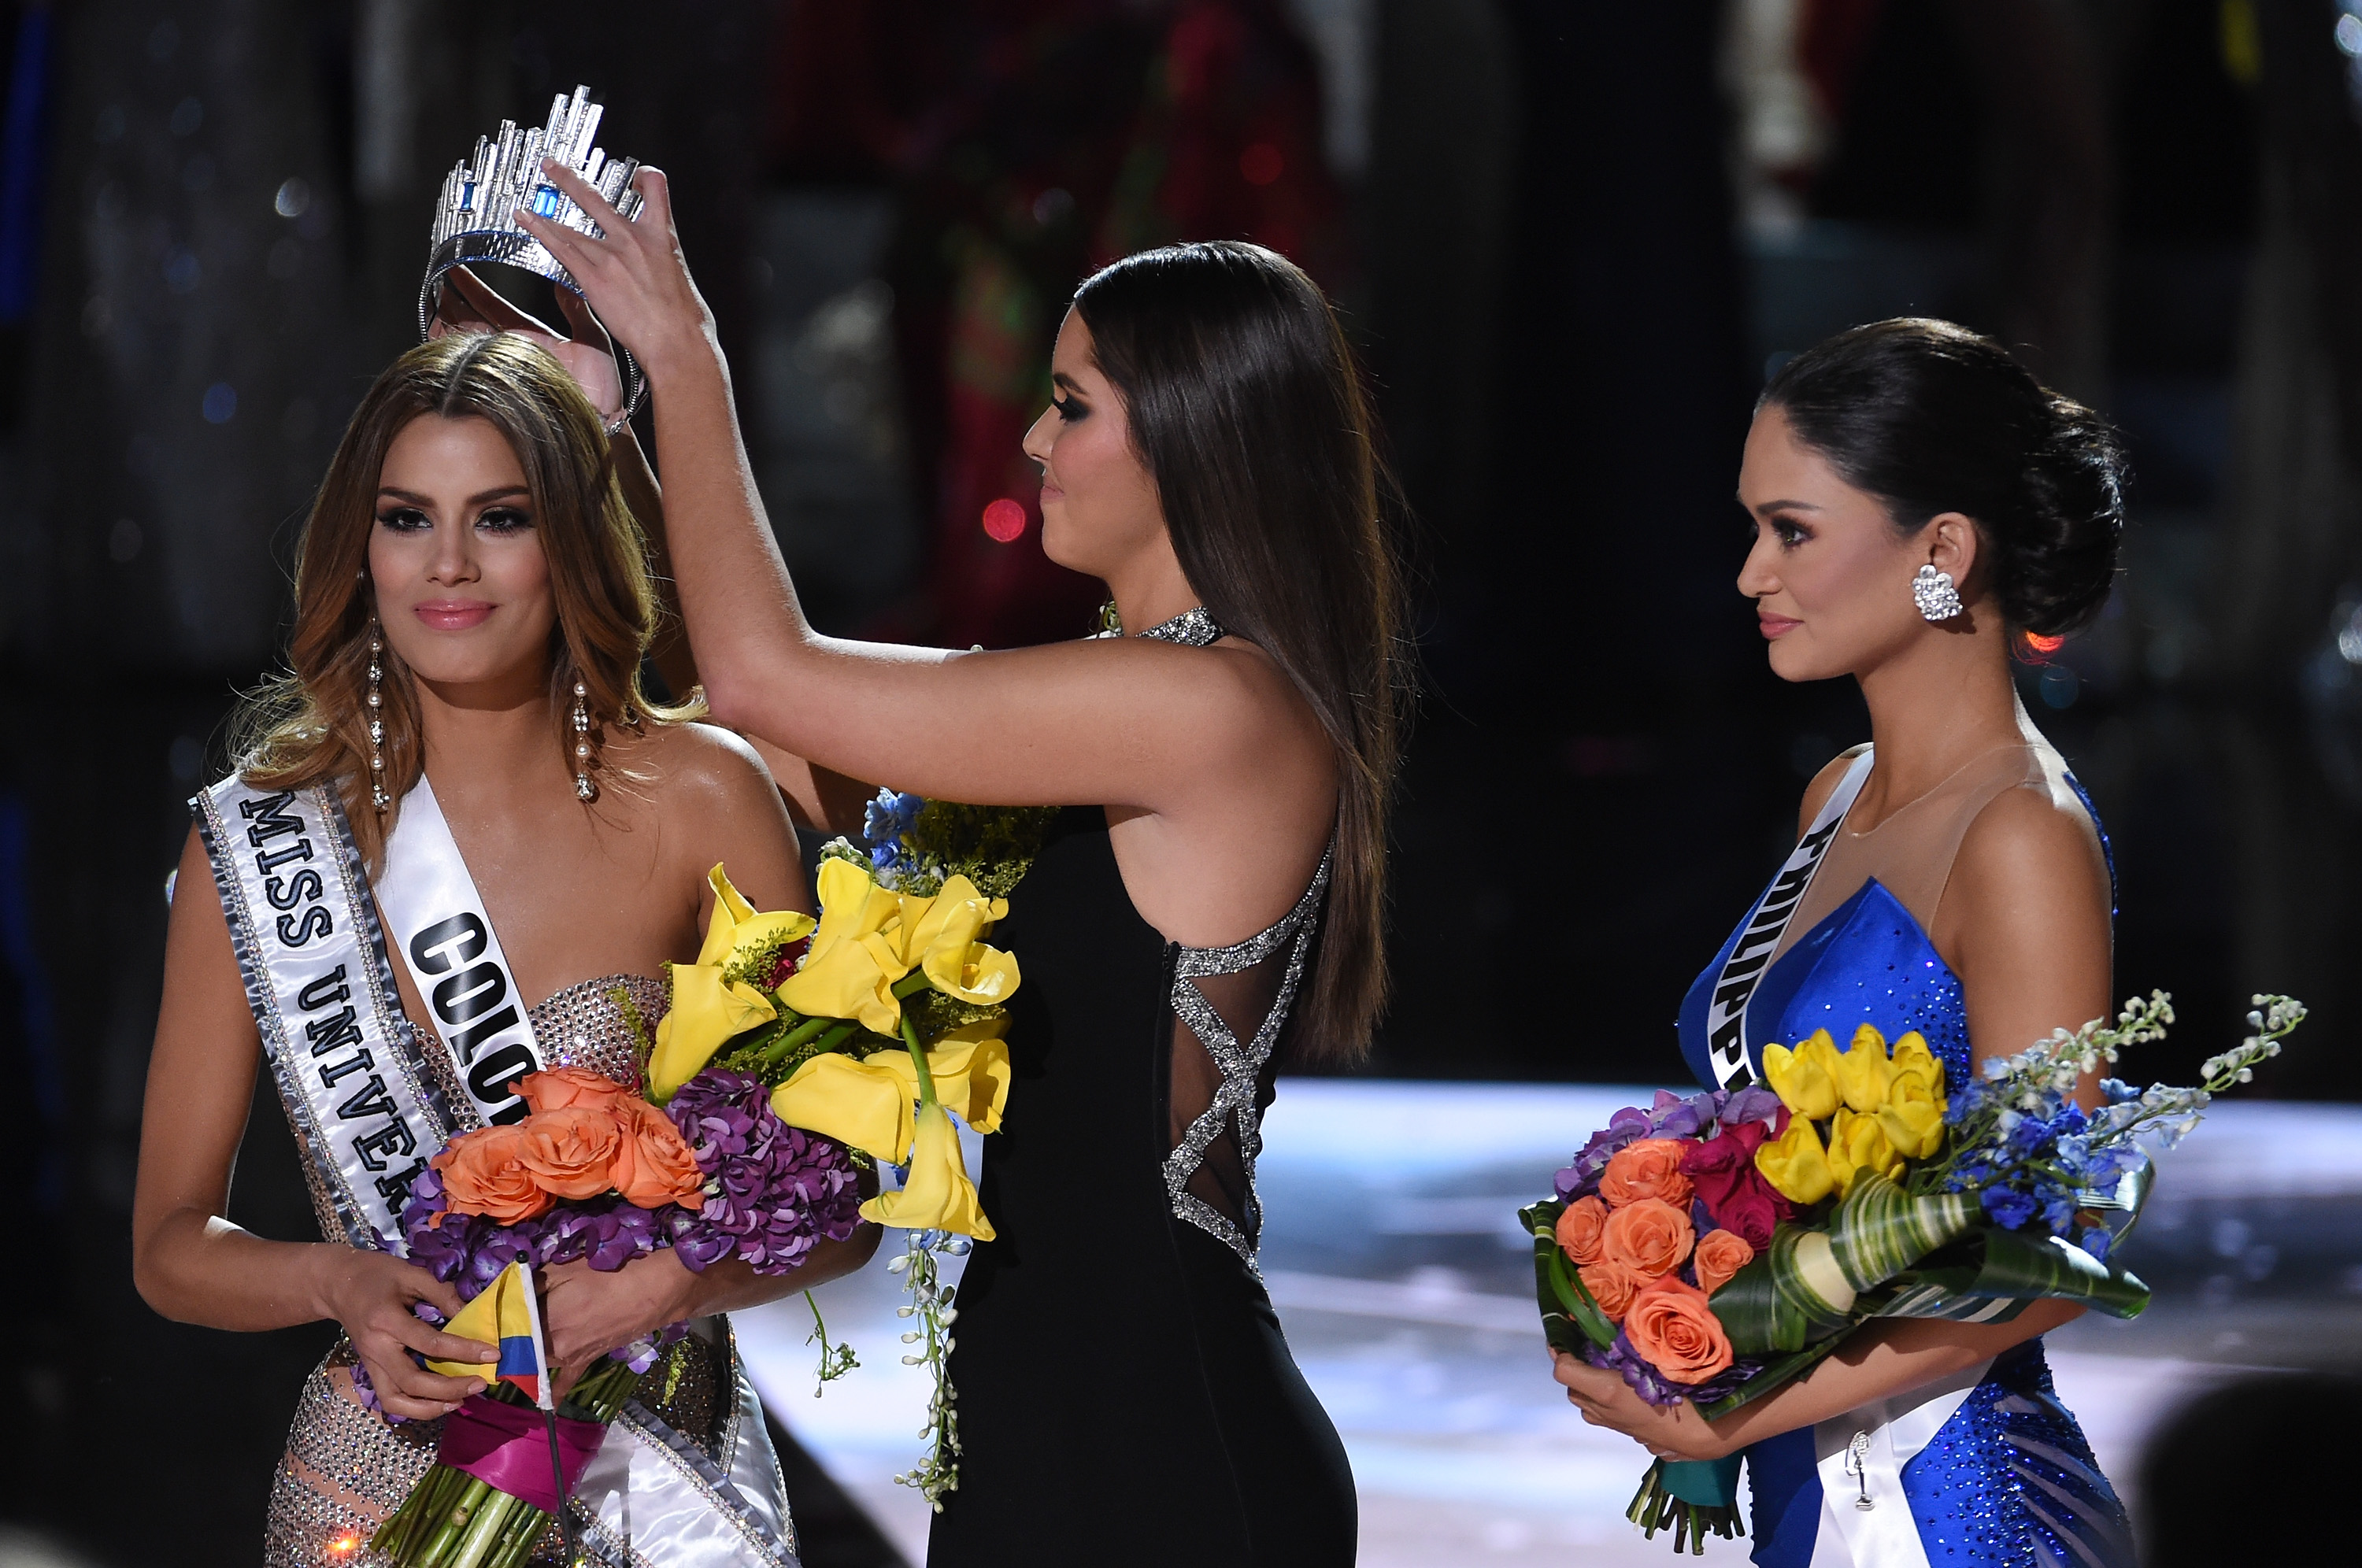 Steve Harvey Announces Wrong Name at Miss Universe, World Cringes